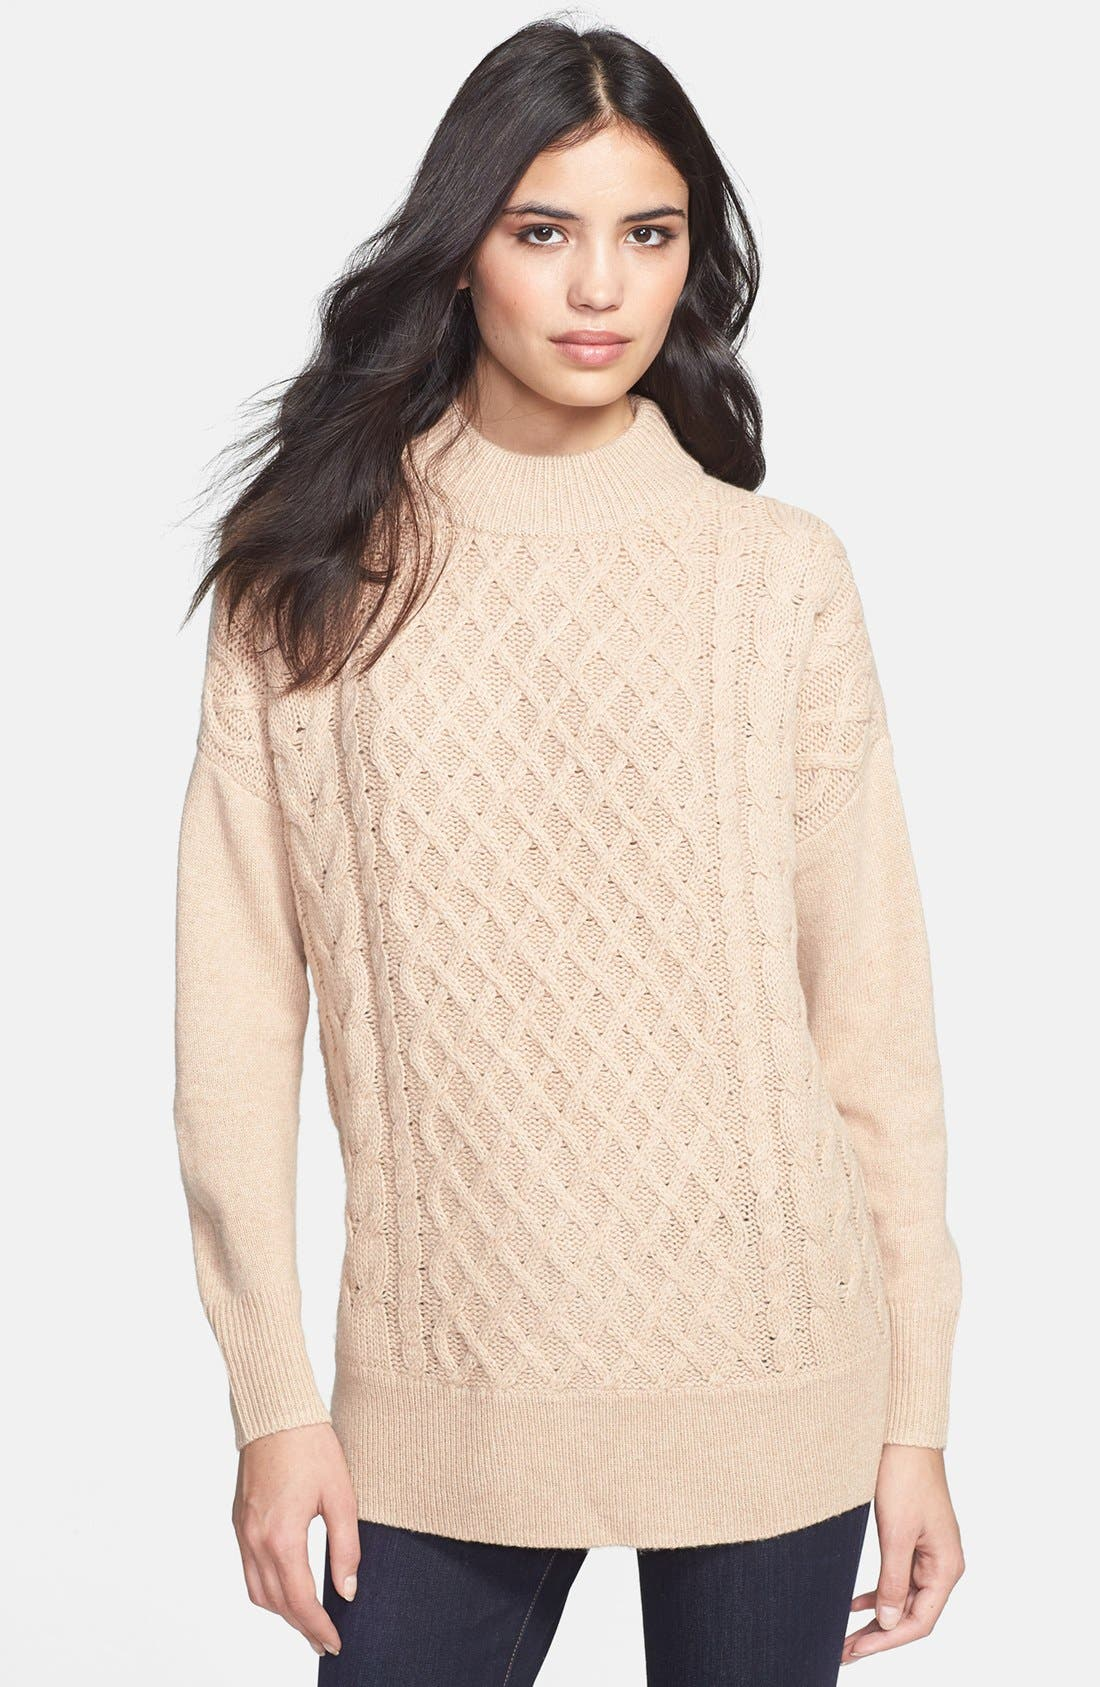 Alternate Image 1 Selected - Joie 'Bryanne' Cable Knit Sweater